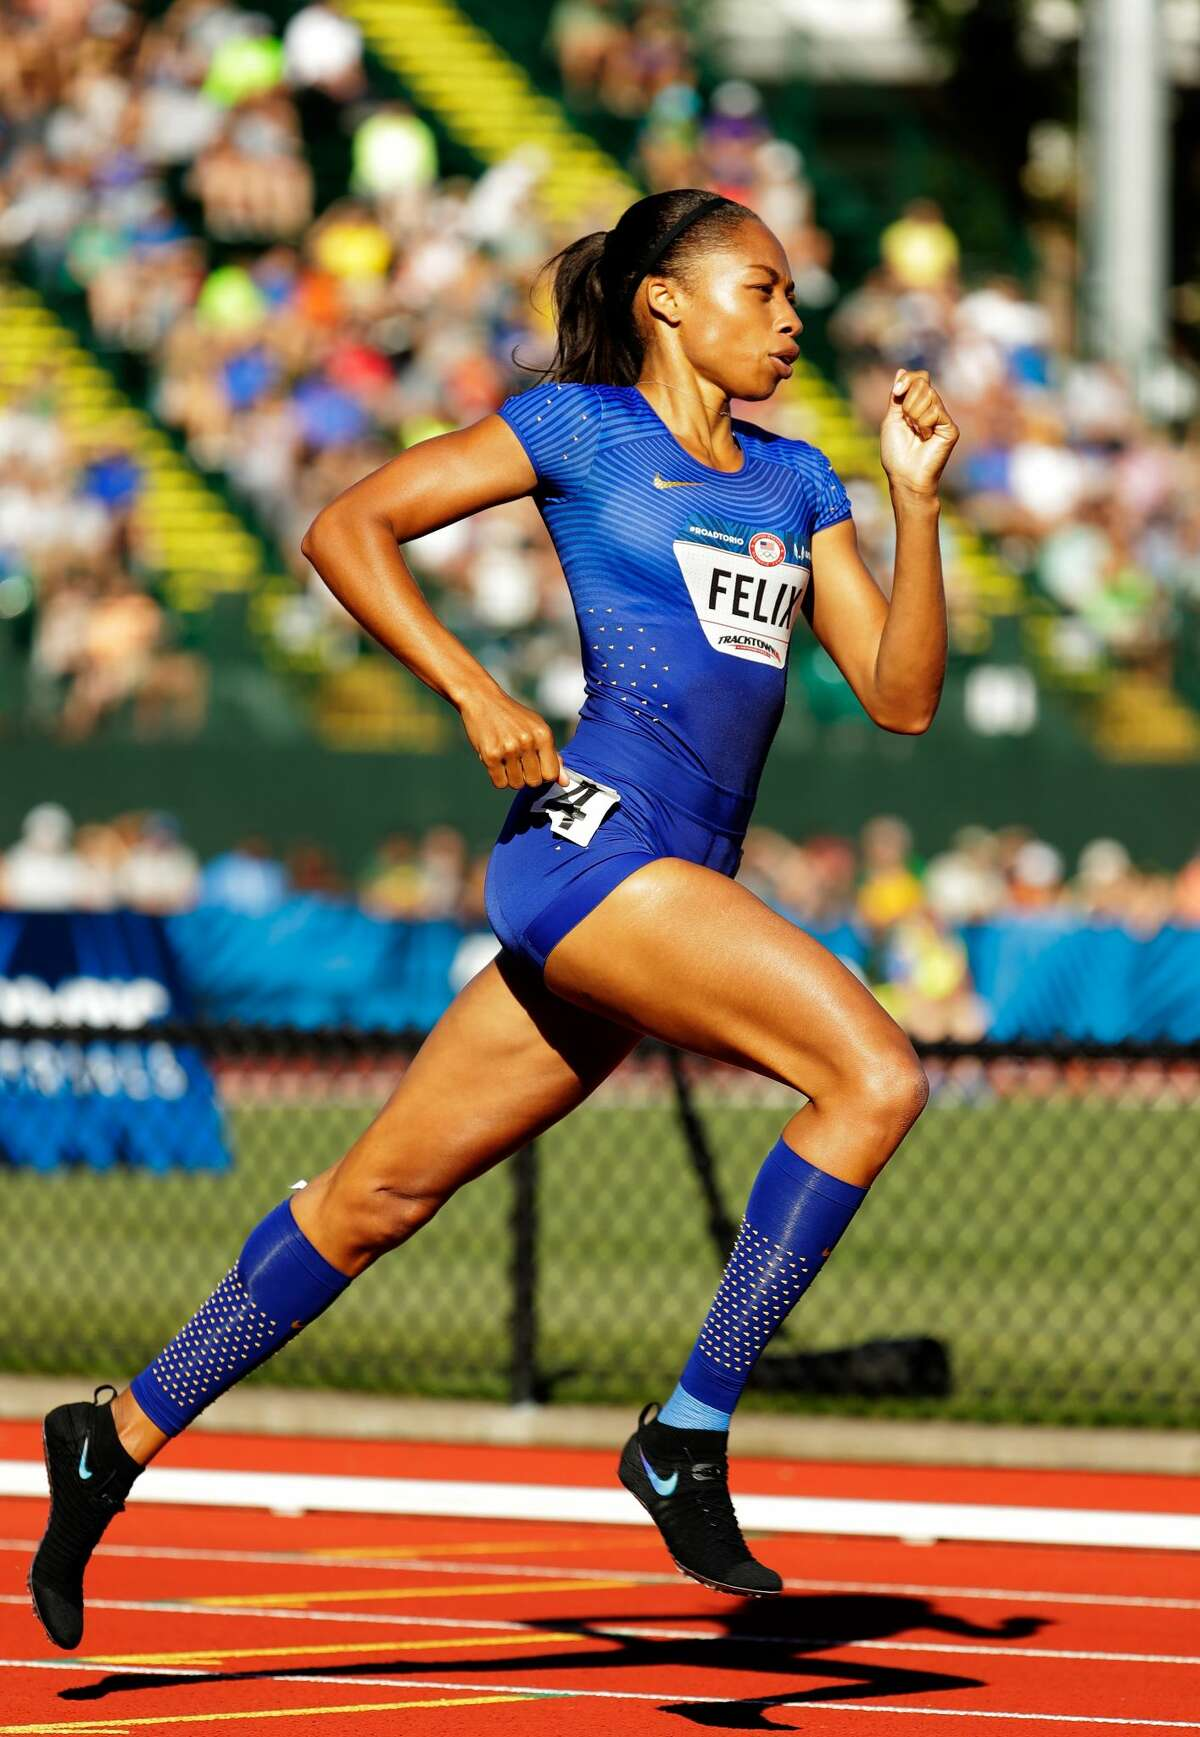 Allyson Felix runs in the first round of the Women's 400 Meters during the 2016 U.S. Olympic Track & Field Team Trials at Hayward Field on July 1, 2016 in Eugene, Oregon. (Photo by Andy Lyons/Getty Images)